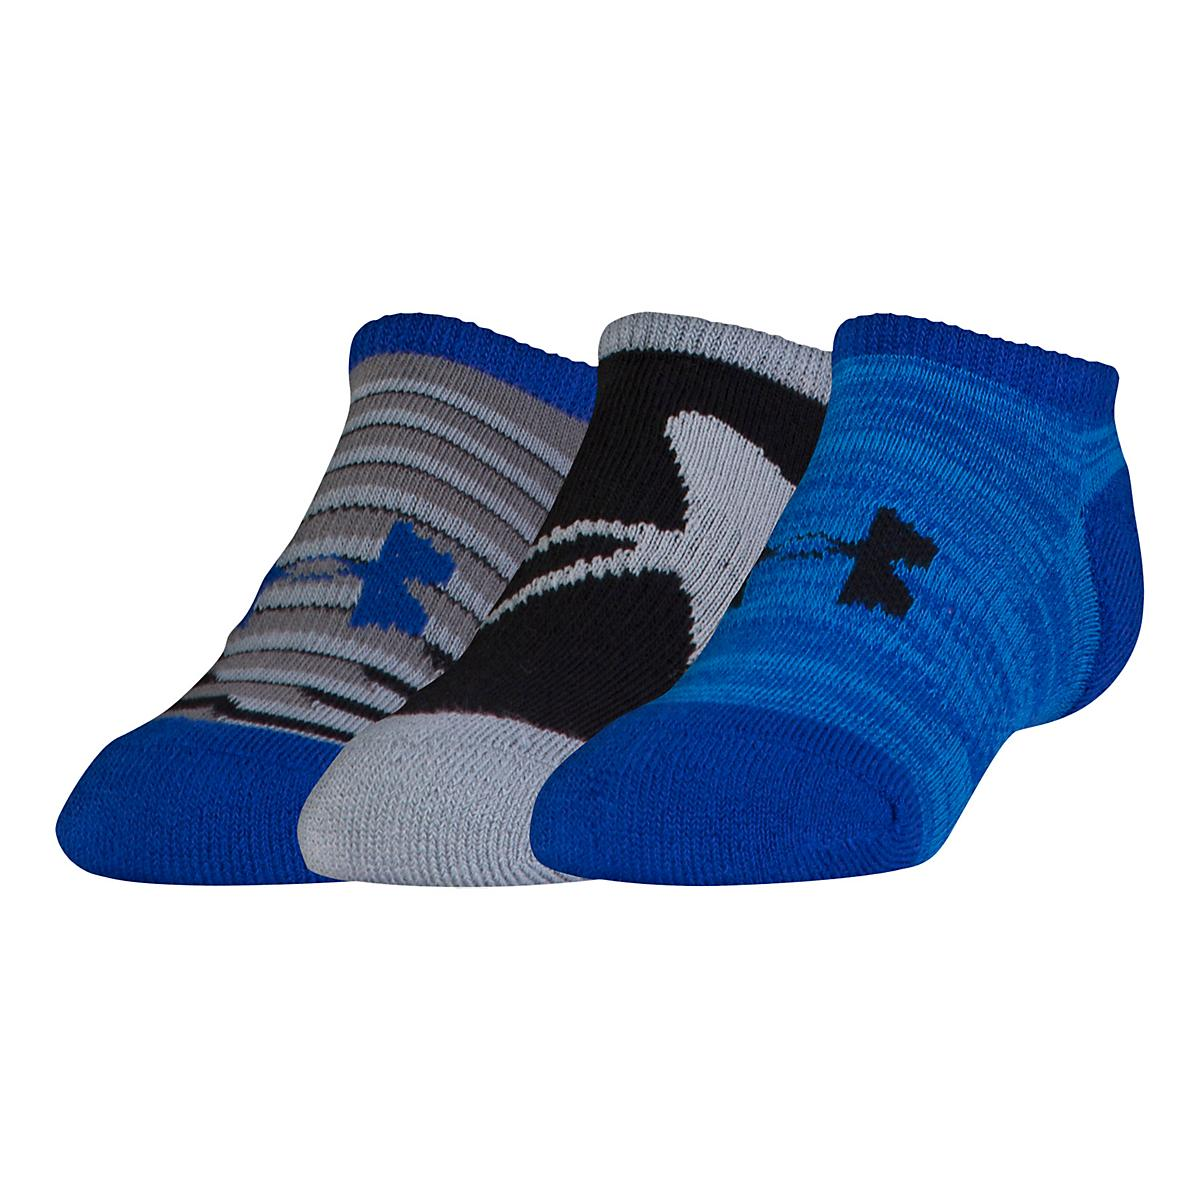 Kids Under Armour�Next 2.0 Solo No Show 3 pack